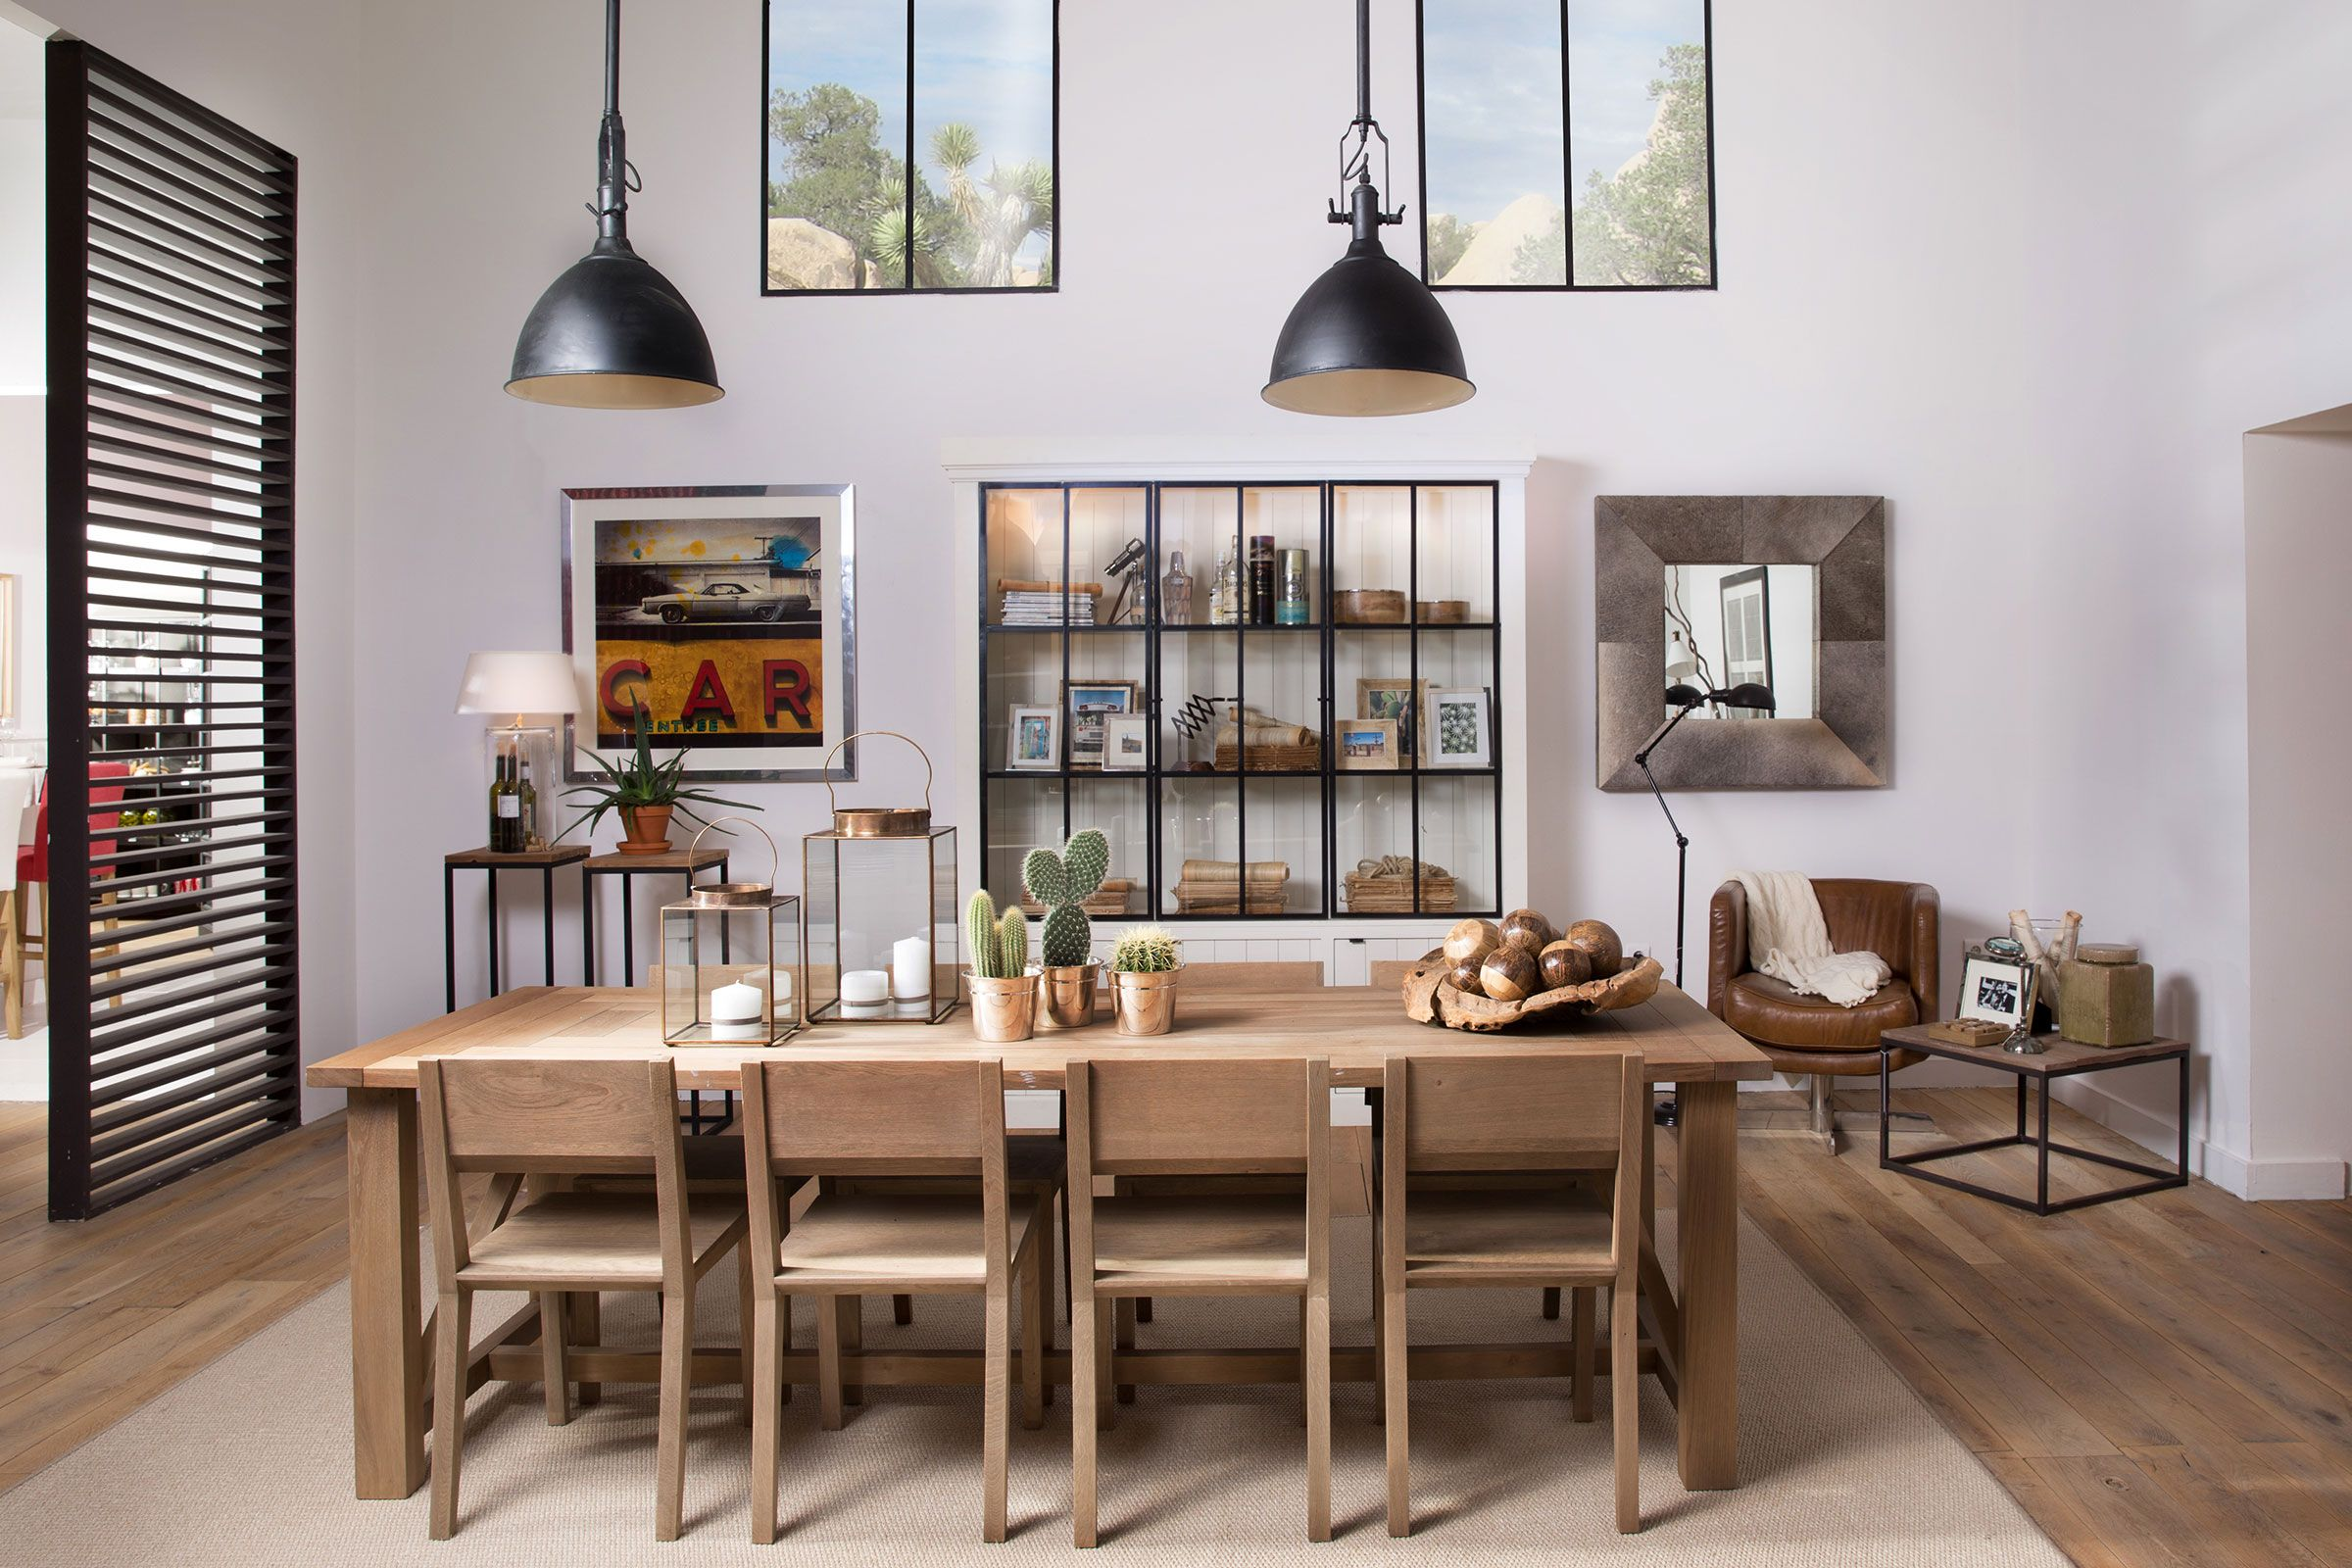 summer dining room inspiration by flamant kiosk flamant concept summer dining room inspiration by flamant